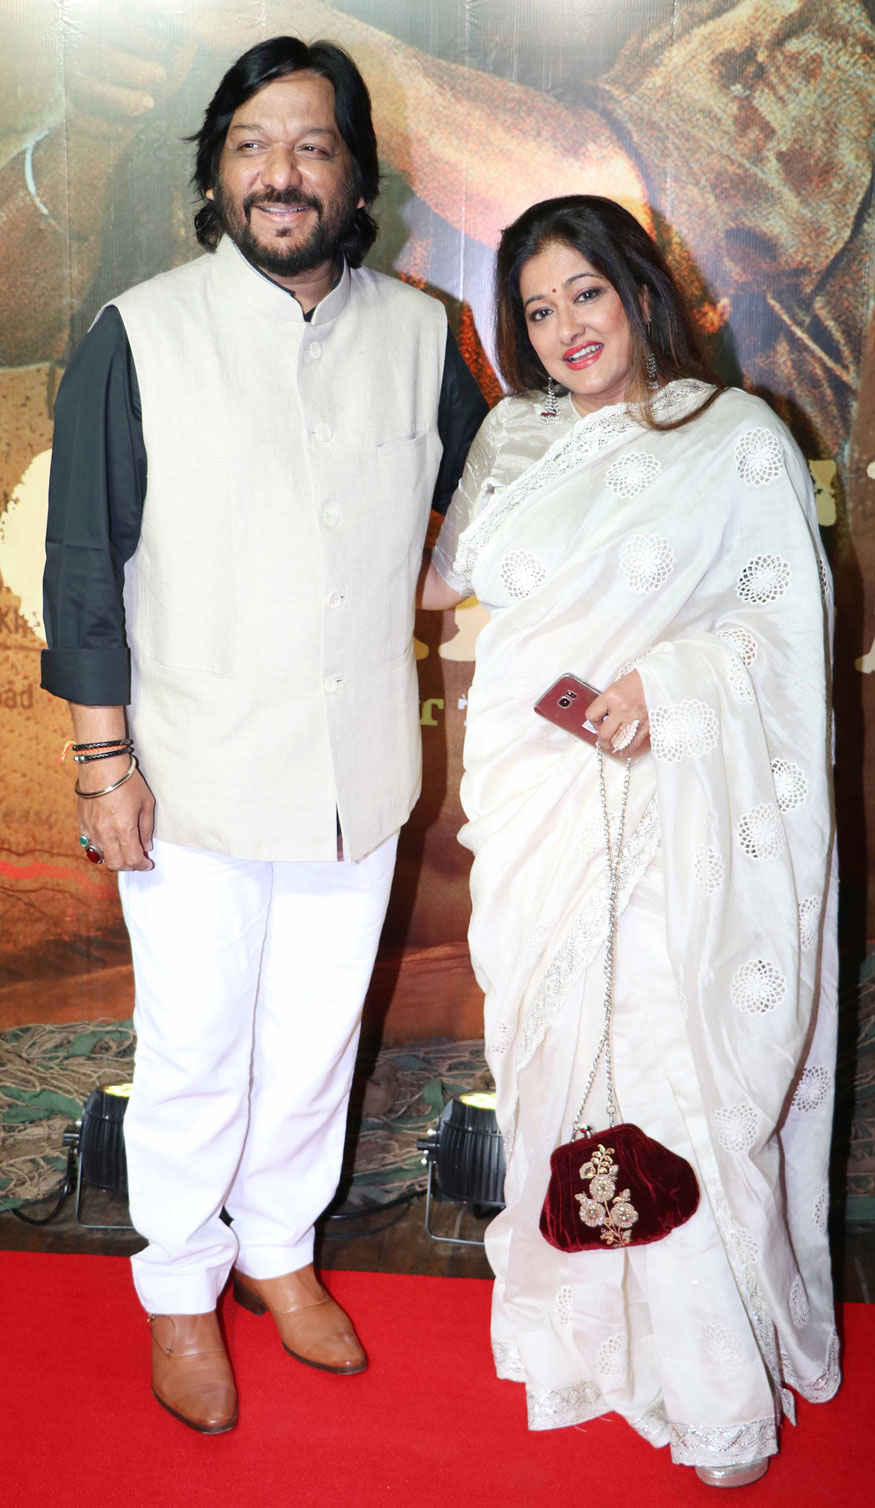 Roop Kumar Rathod and Sunali Rathod at 'Border' Movie 20 Year Completion Party